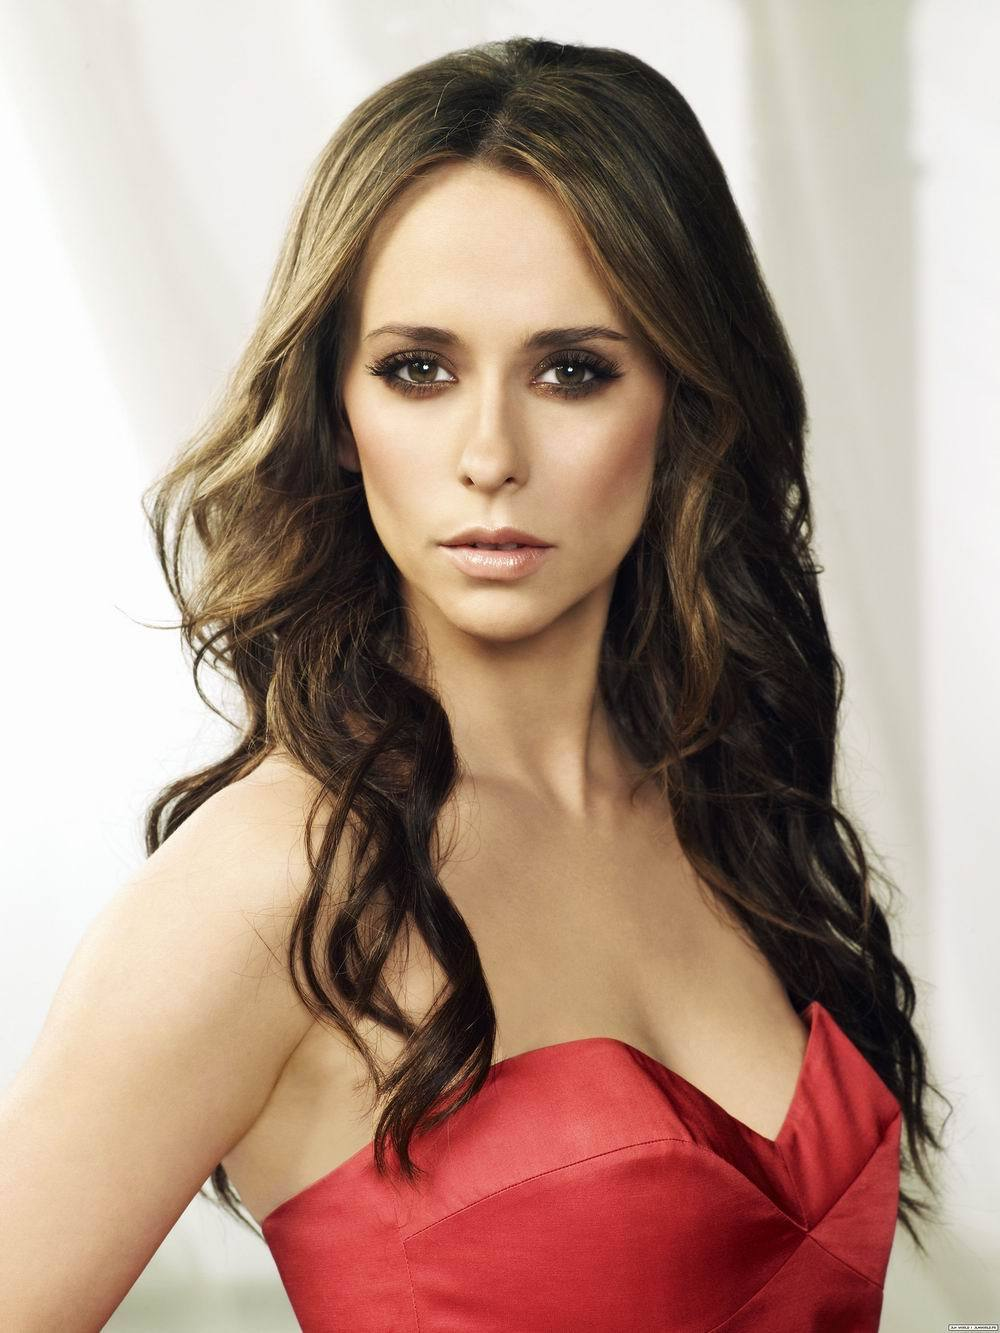 Jennifer Love Hewitt nudes (92 photo), leaked Topless, Instagram, see through 2019